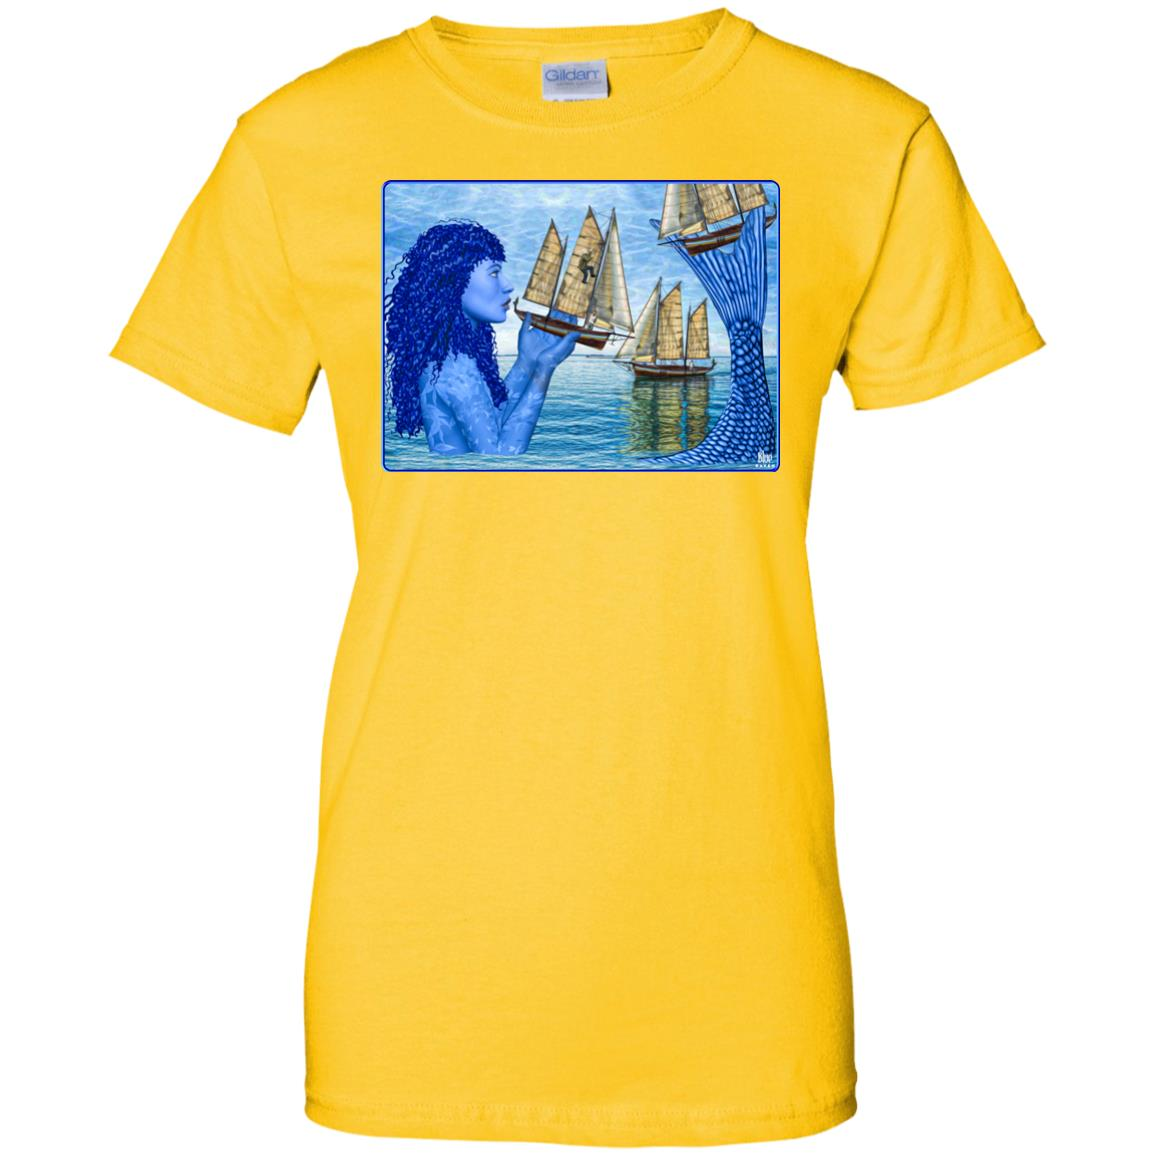 I Saw Three Ships - Women's Relaxed Fit T-Shirt